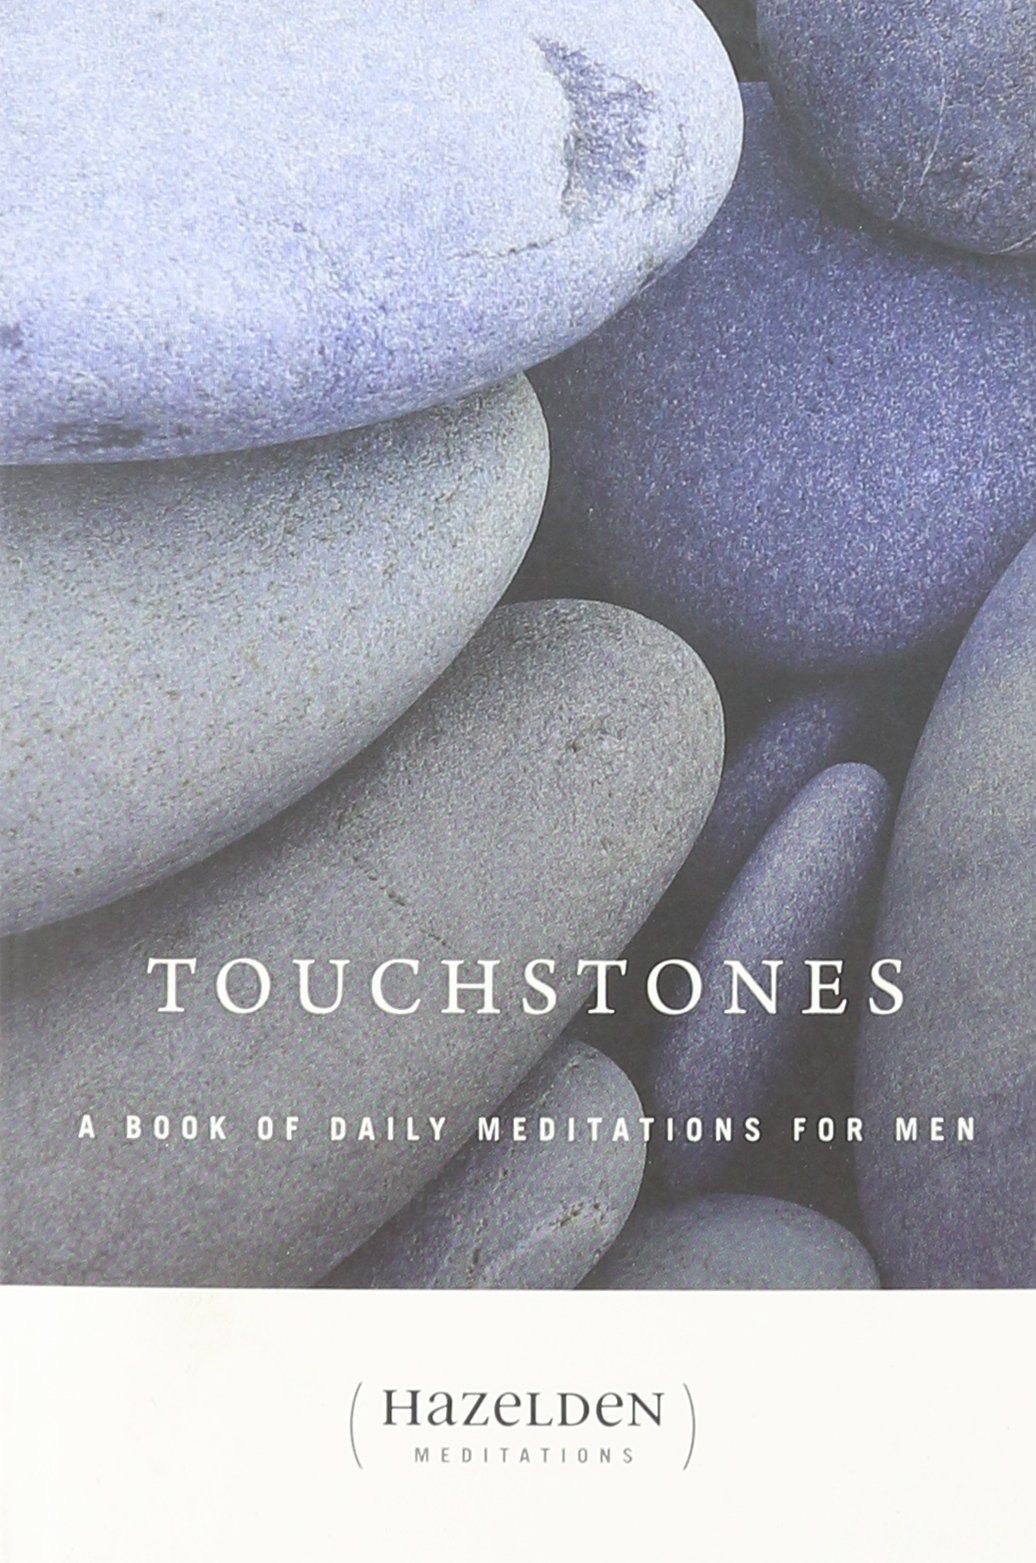 Touchstones Book Daily Meditations Men product image